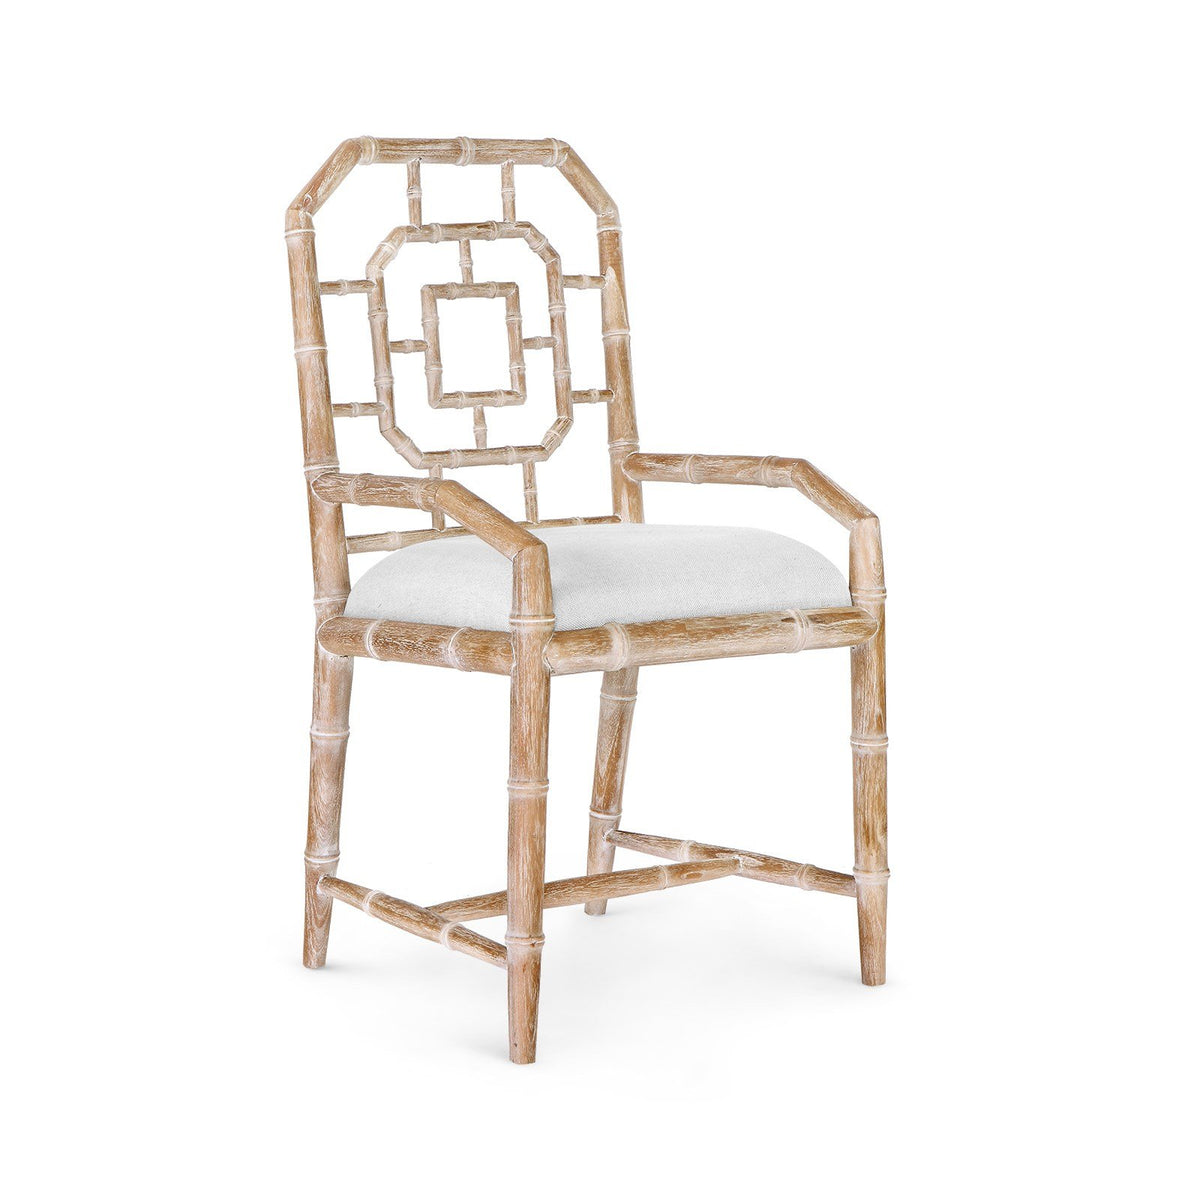 Photo of Bungalow 5 GEORGICA ARMCHAIR, NATURALcarved-mahogany-octagonal-armchair-natural-geo-555-98